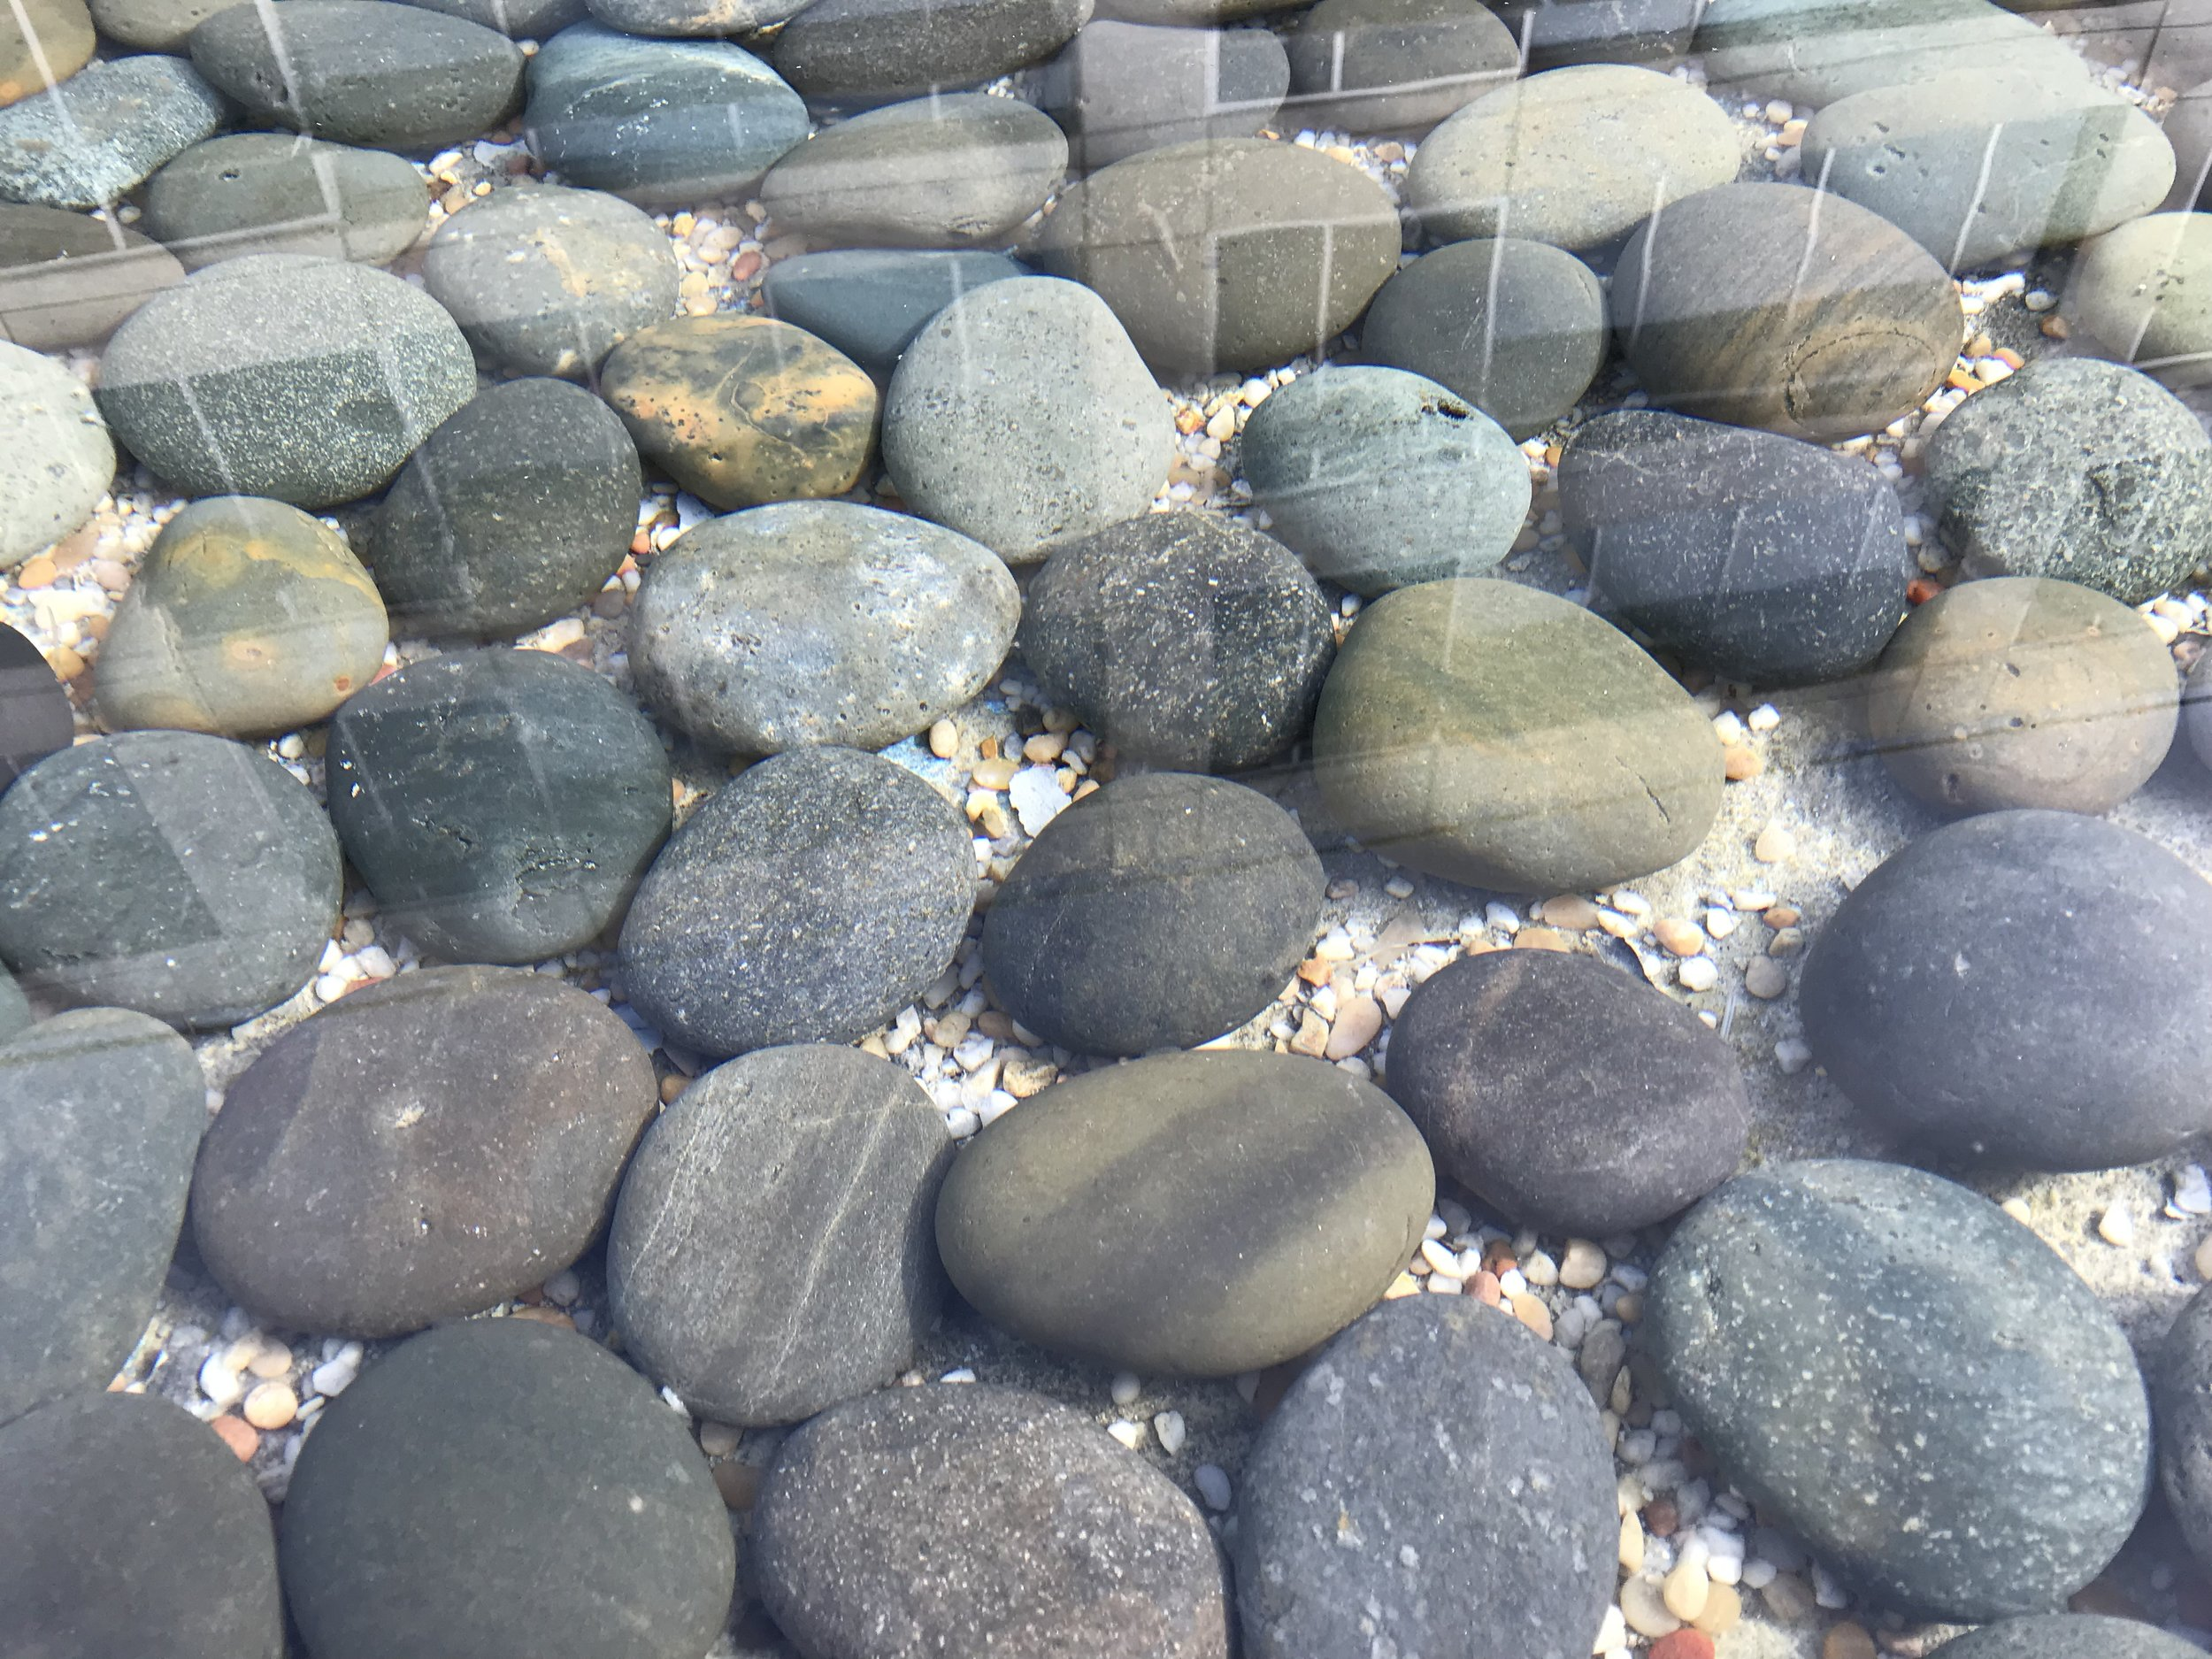 Just a cool pic of stones at the bottom of a fountain pool I saw this weekend.